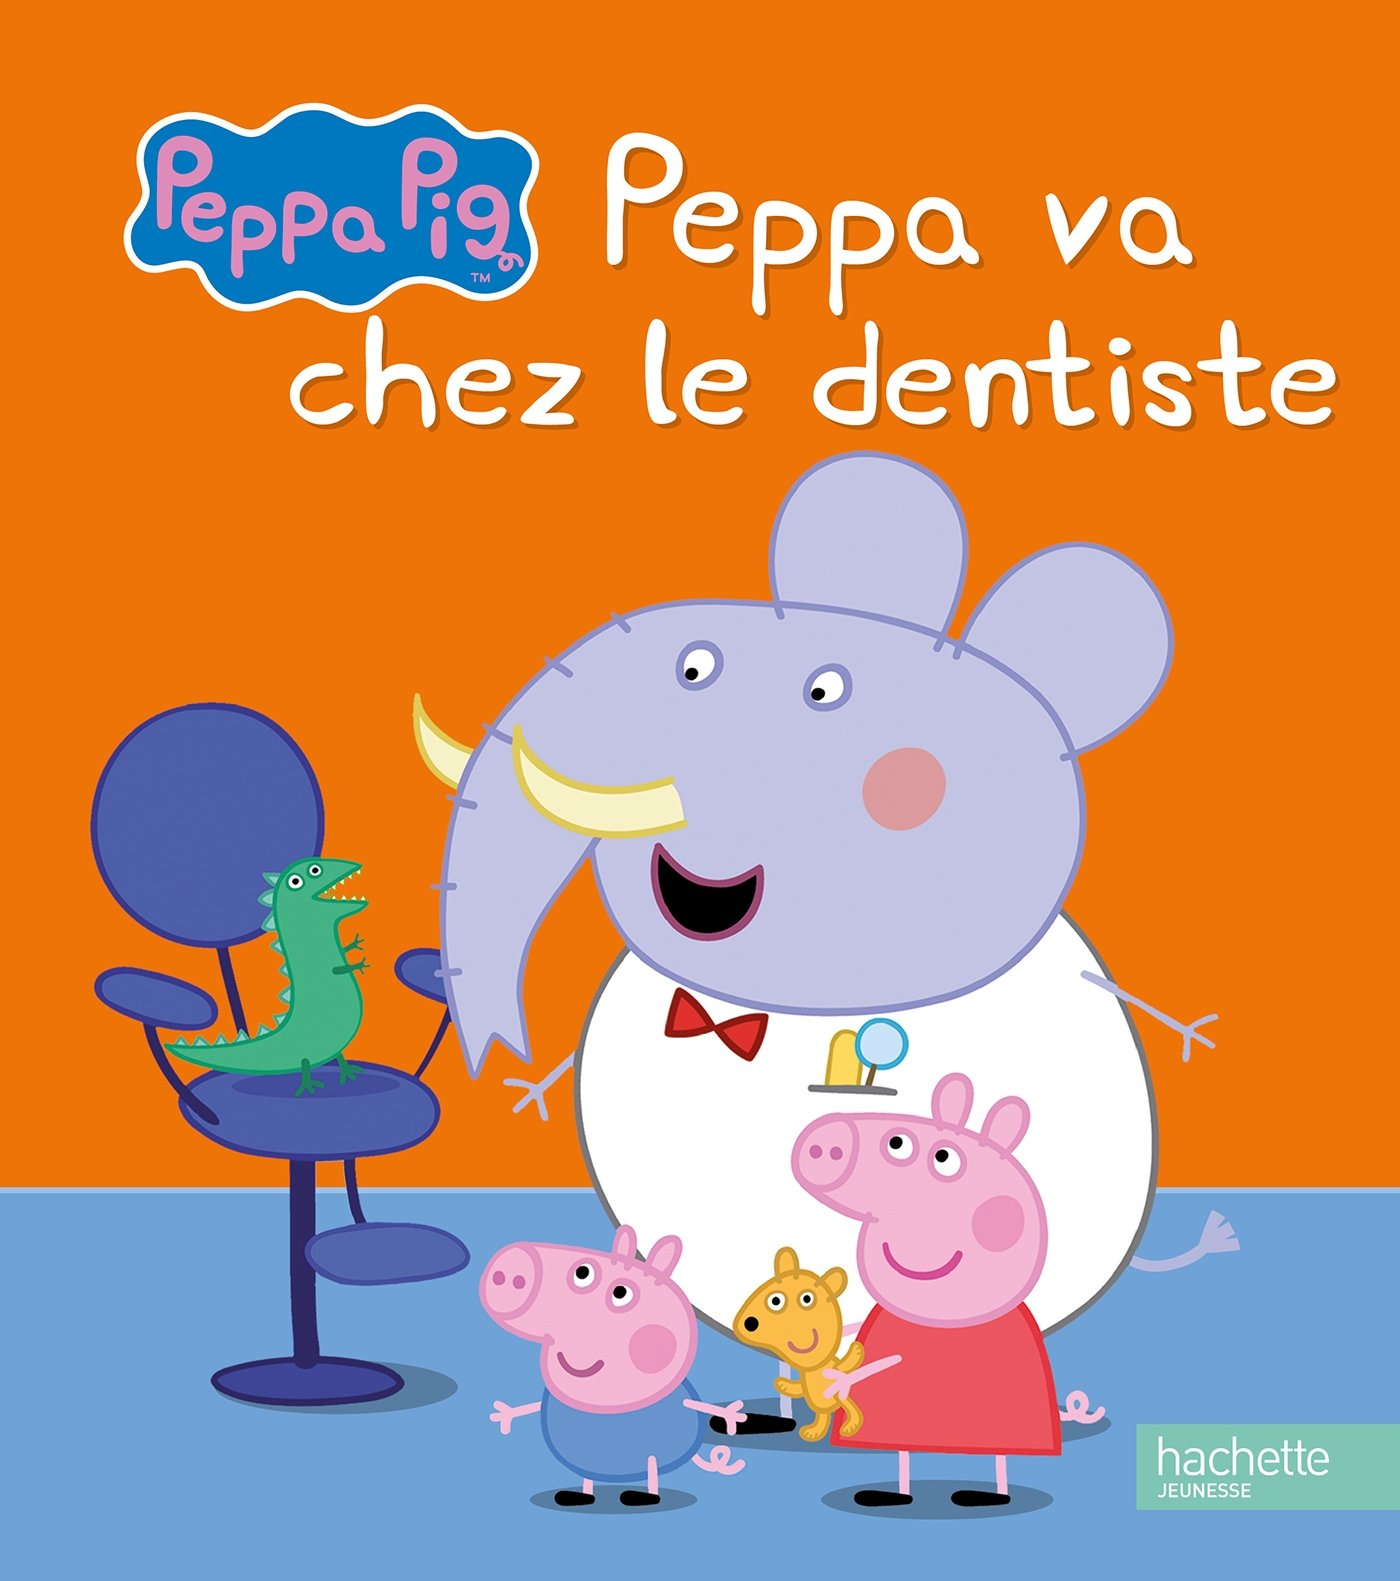 peppa dentiste